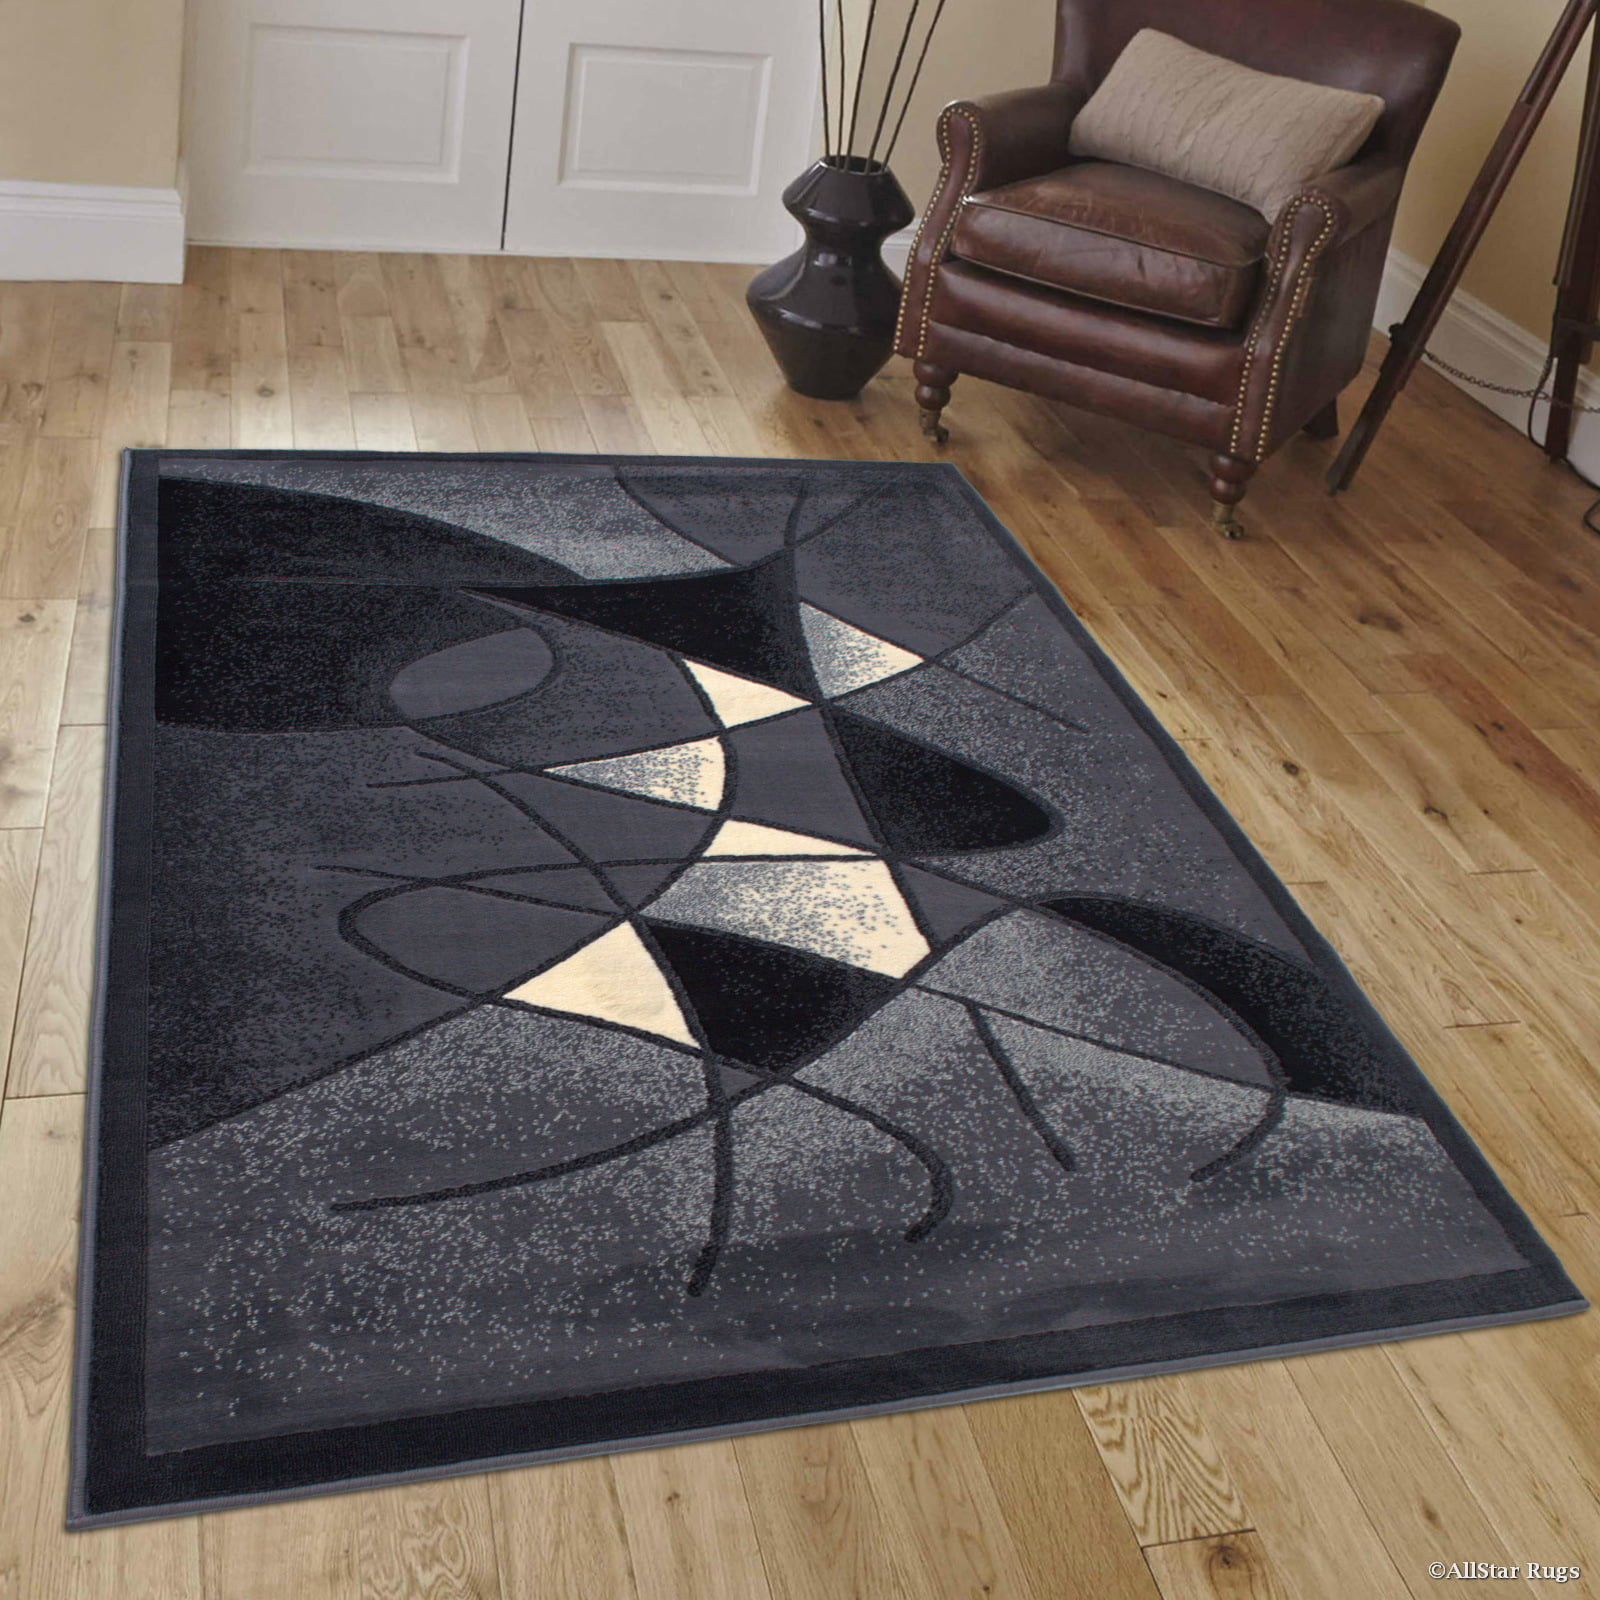 "Allstar Grey Abstract Modern Area Carpet Rug (7' 10"" x 10' 2"") by"